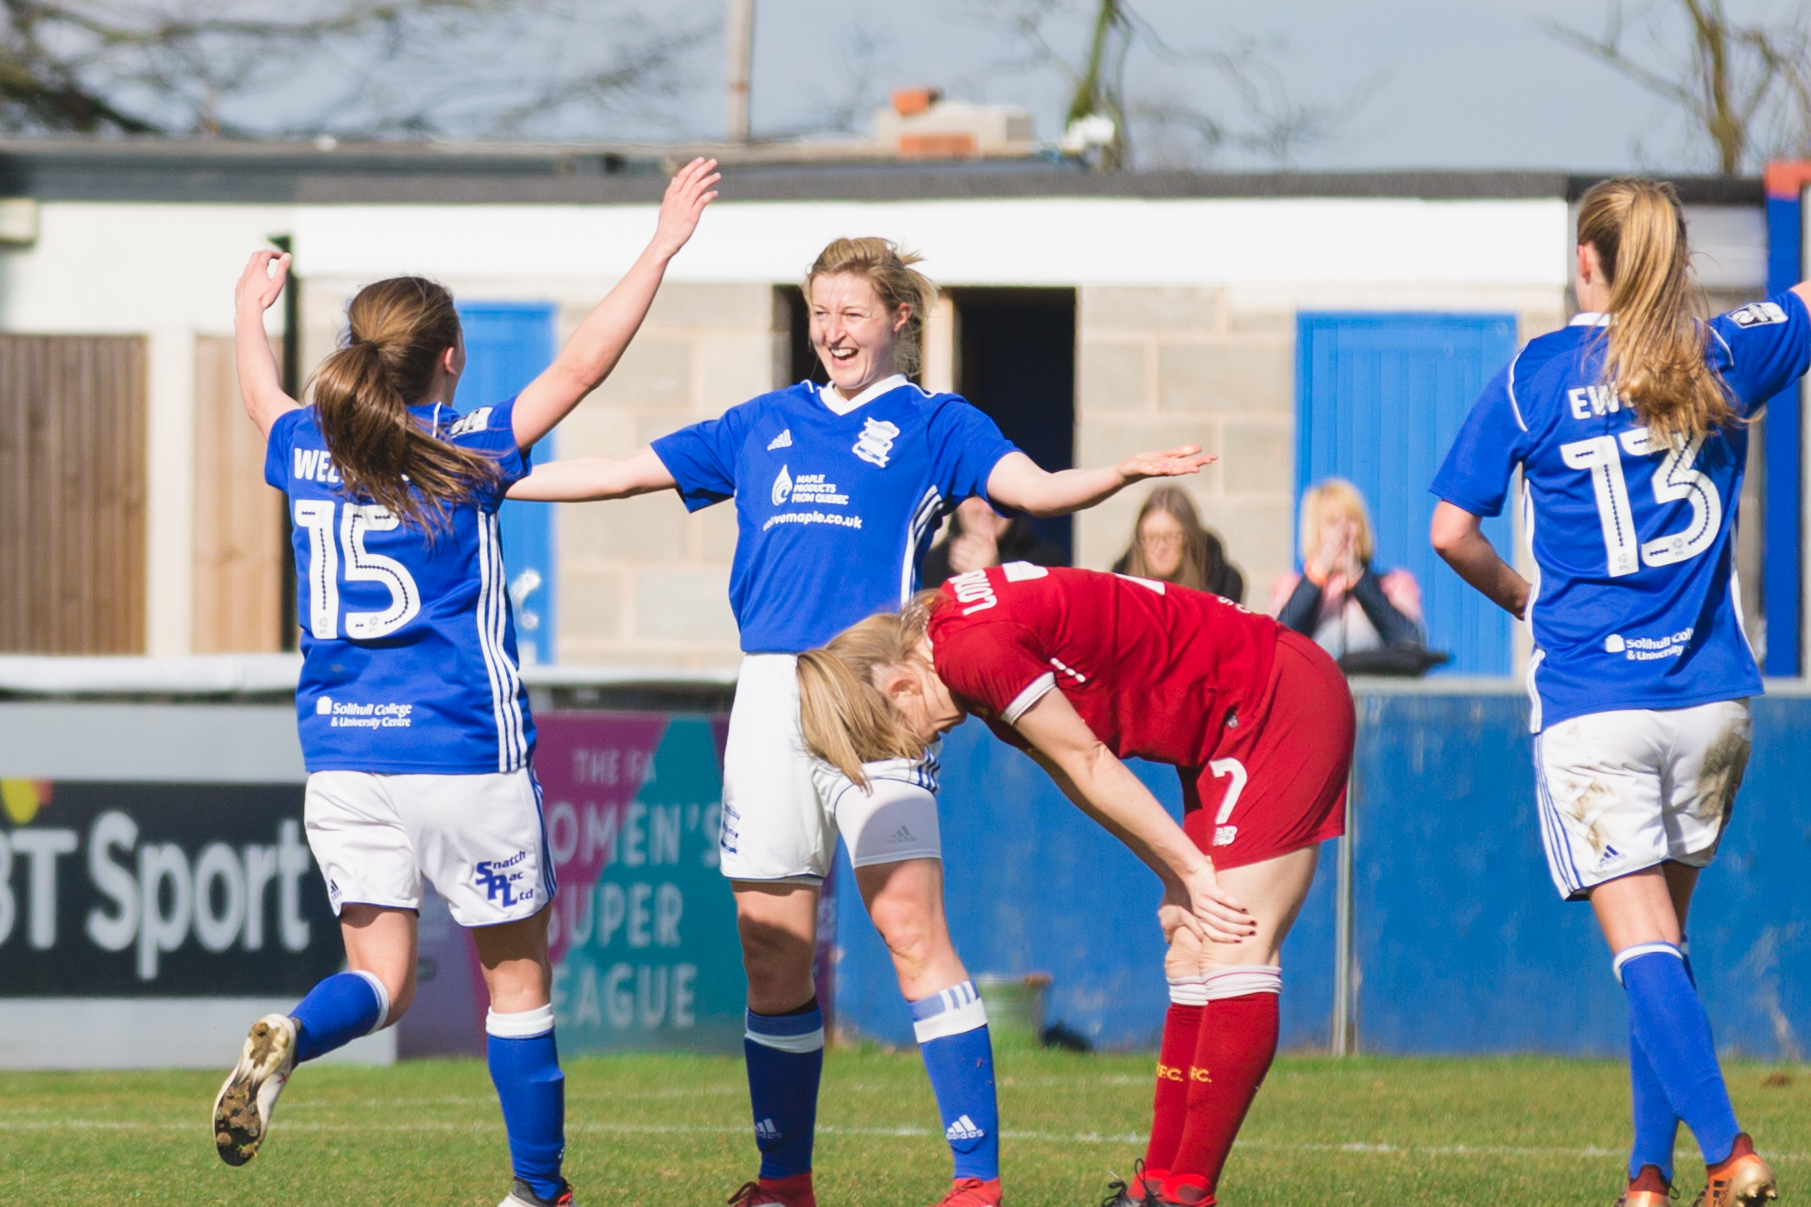 Birmingham City Ladies FC players celebrating